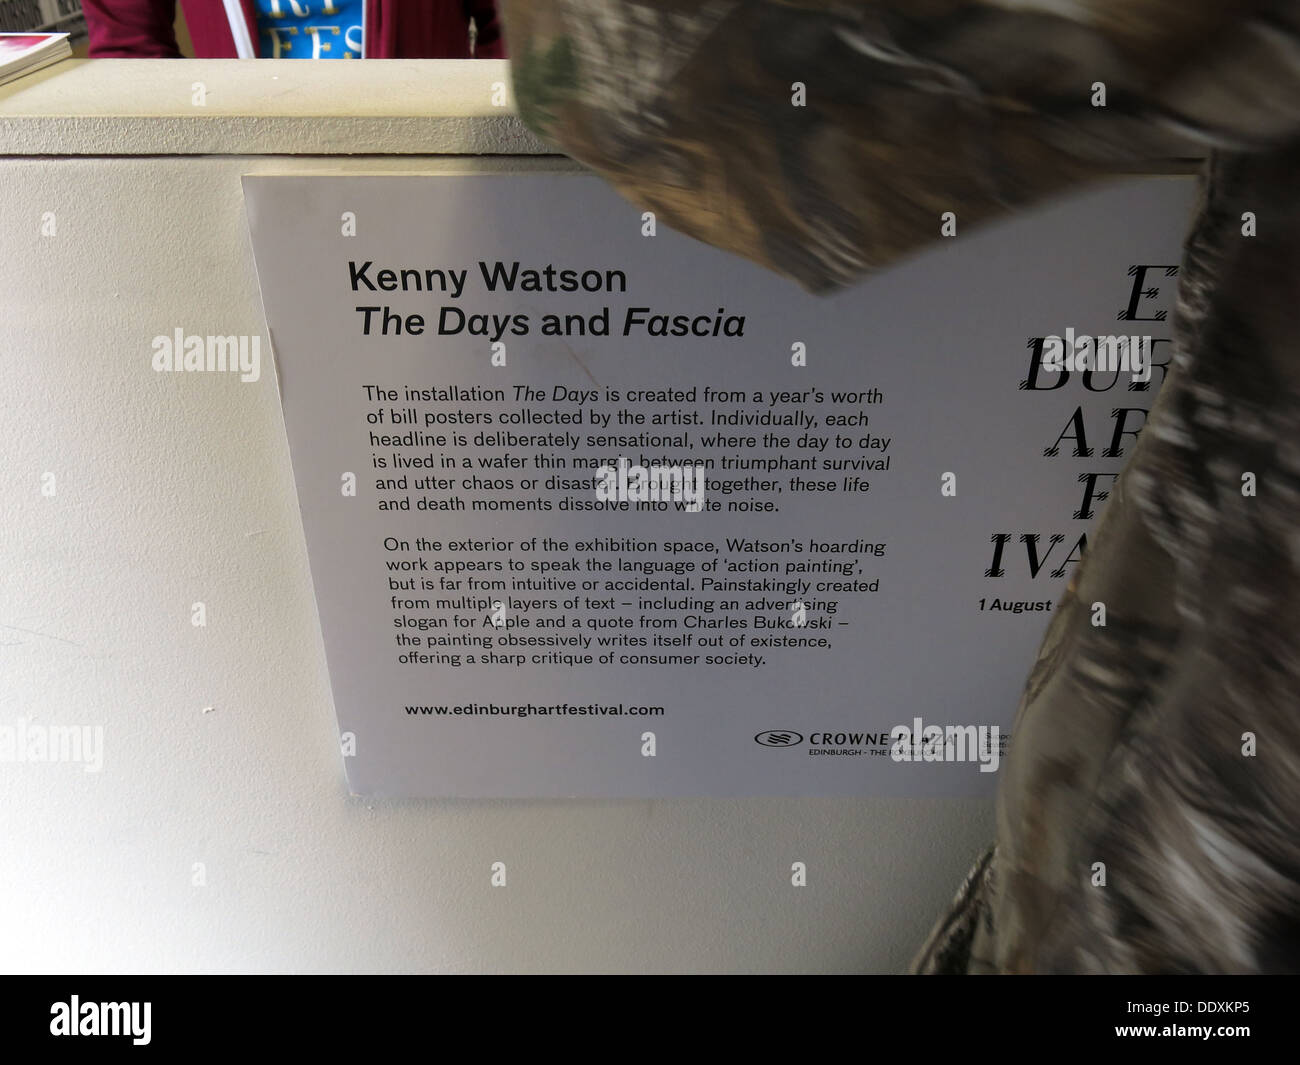 Kenny Watson exhibition 169 Rose St Edinburgh 'The Days and Fascia' exhibition,Scotland,UK - Stock Image